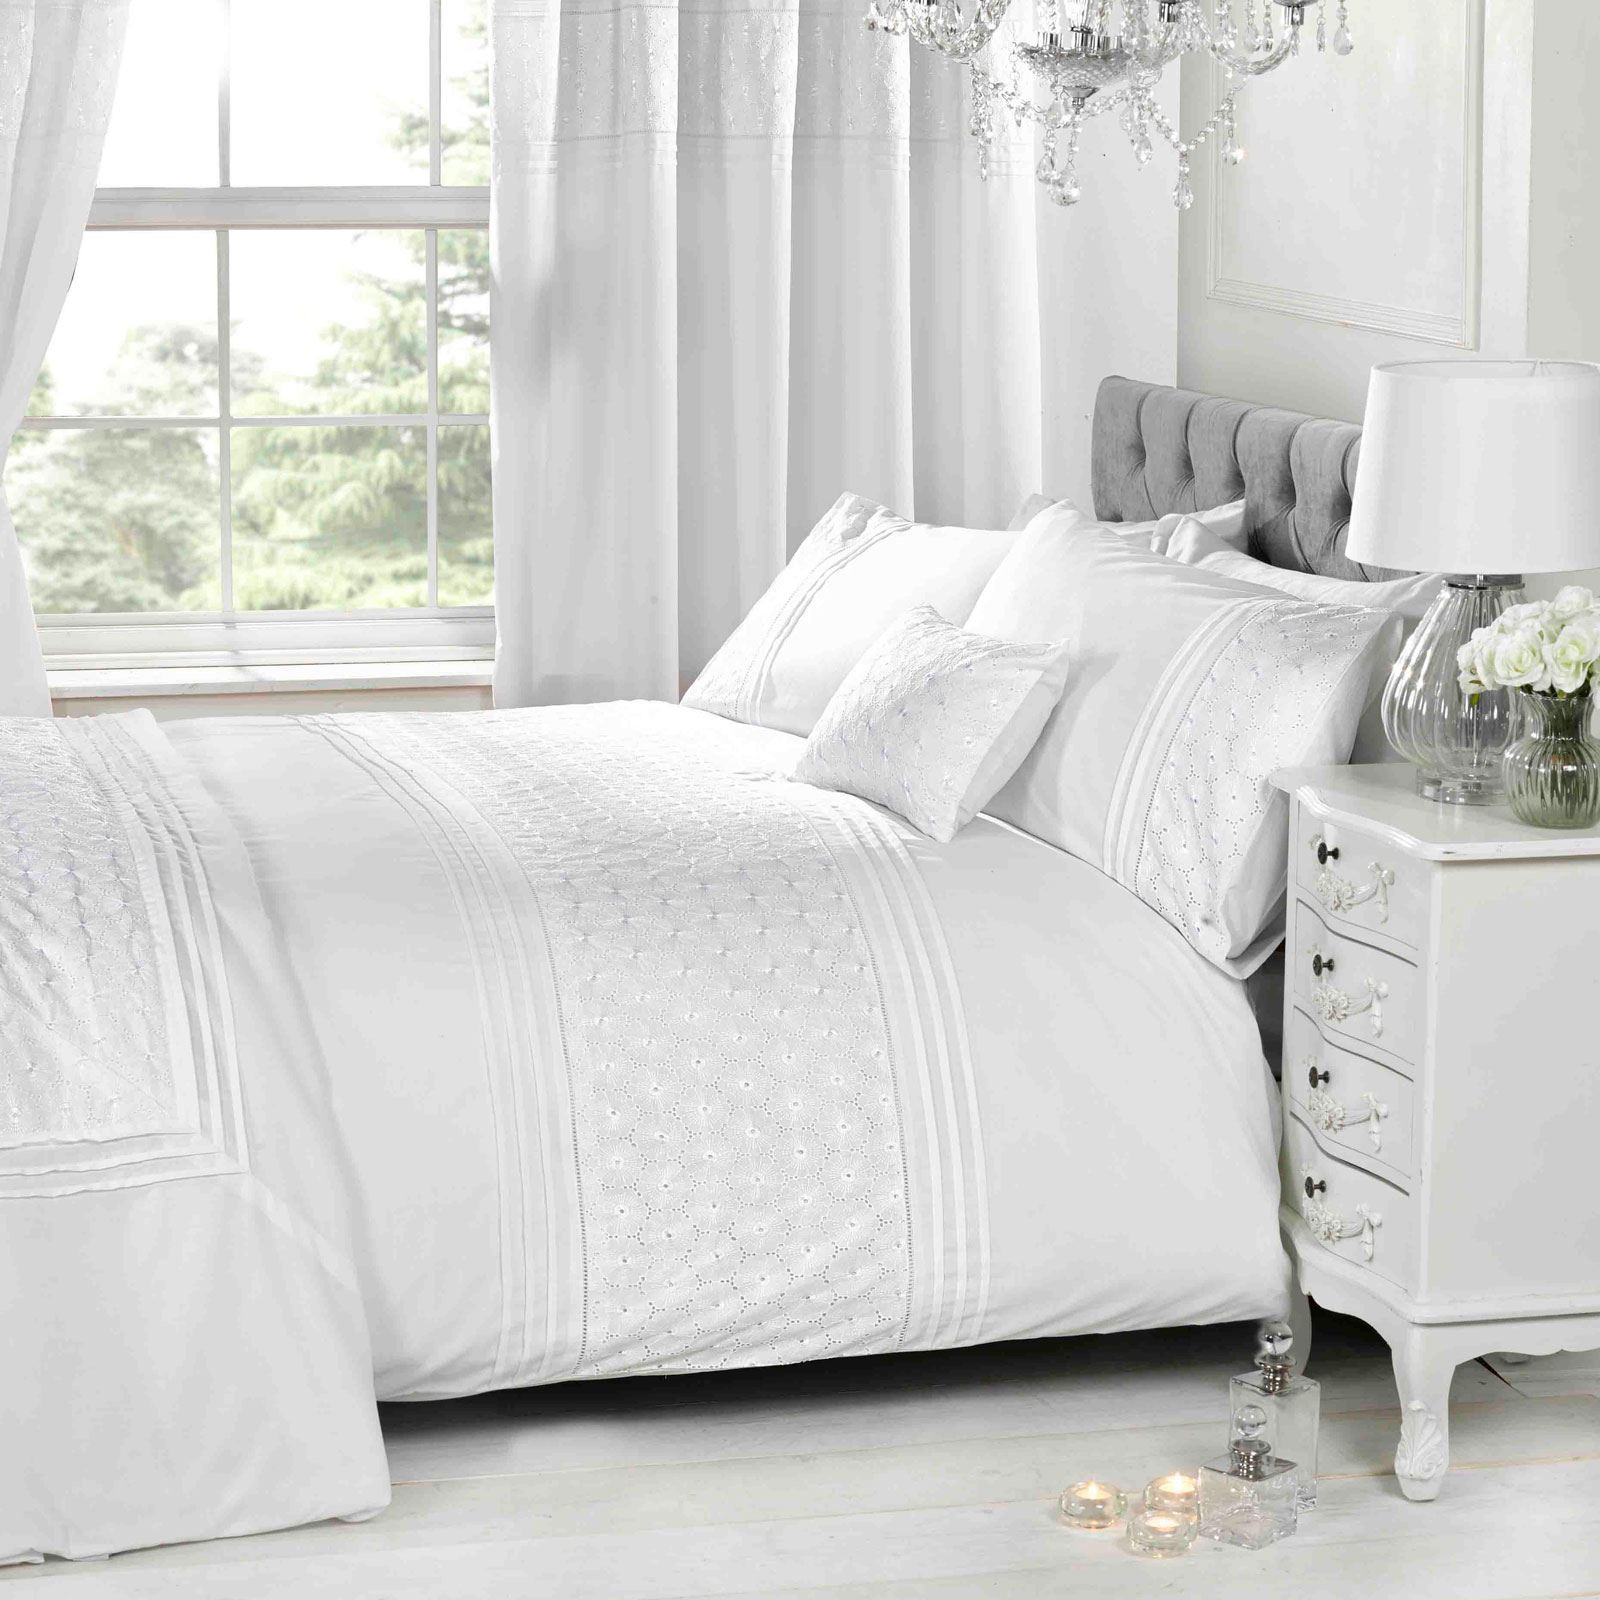 EVERDEAN FLORAL WHITE SUPER KING SIZE DUVET COVER SET LUXURY